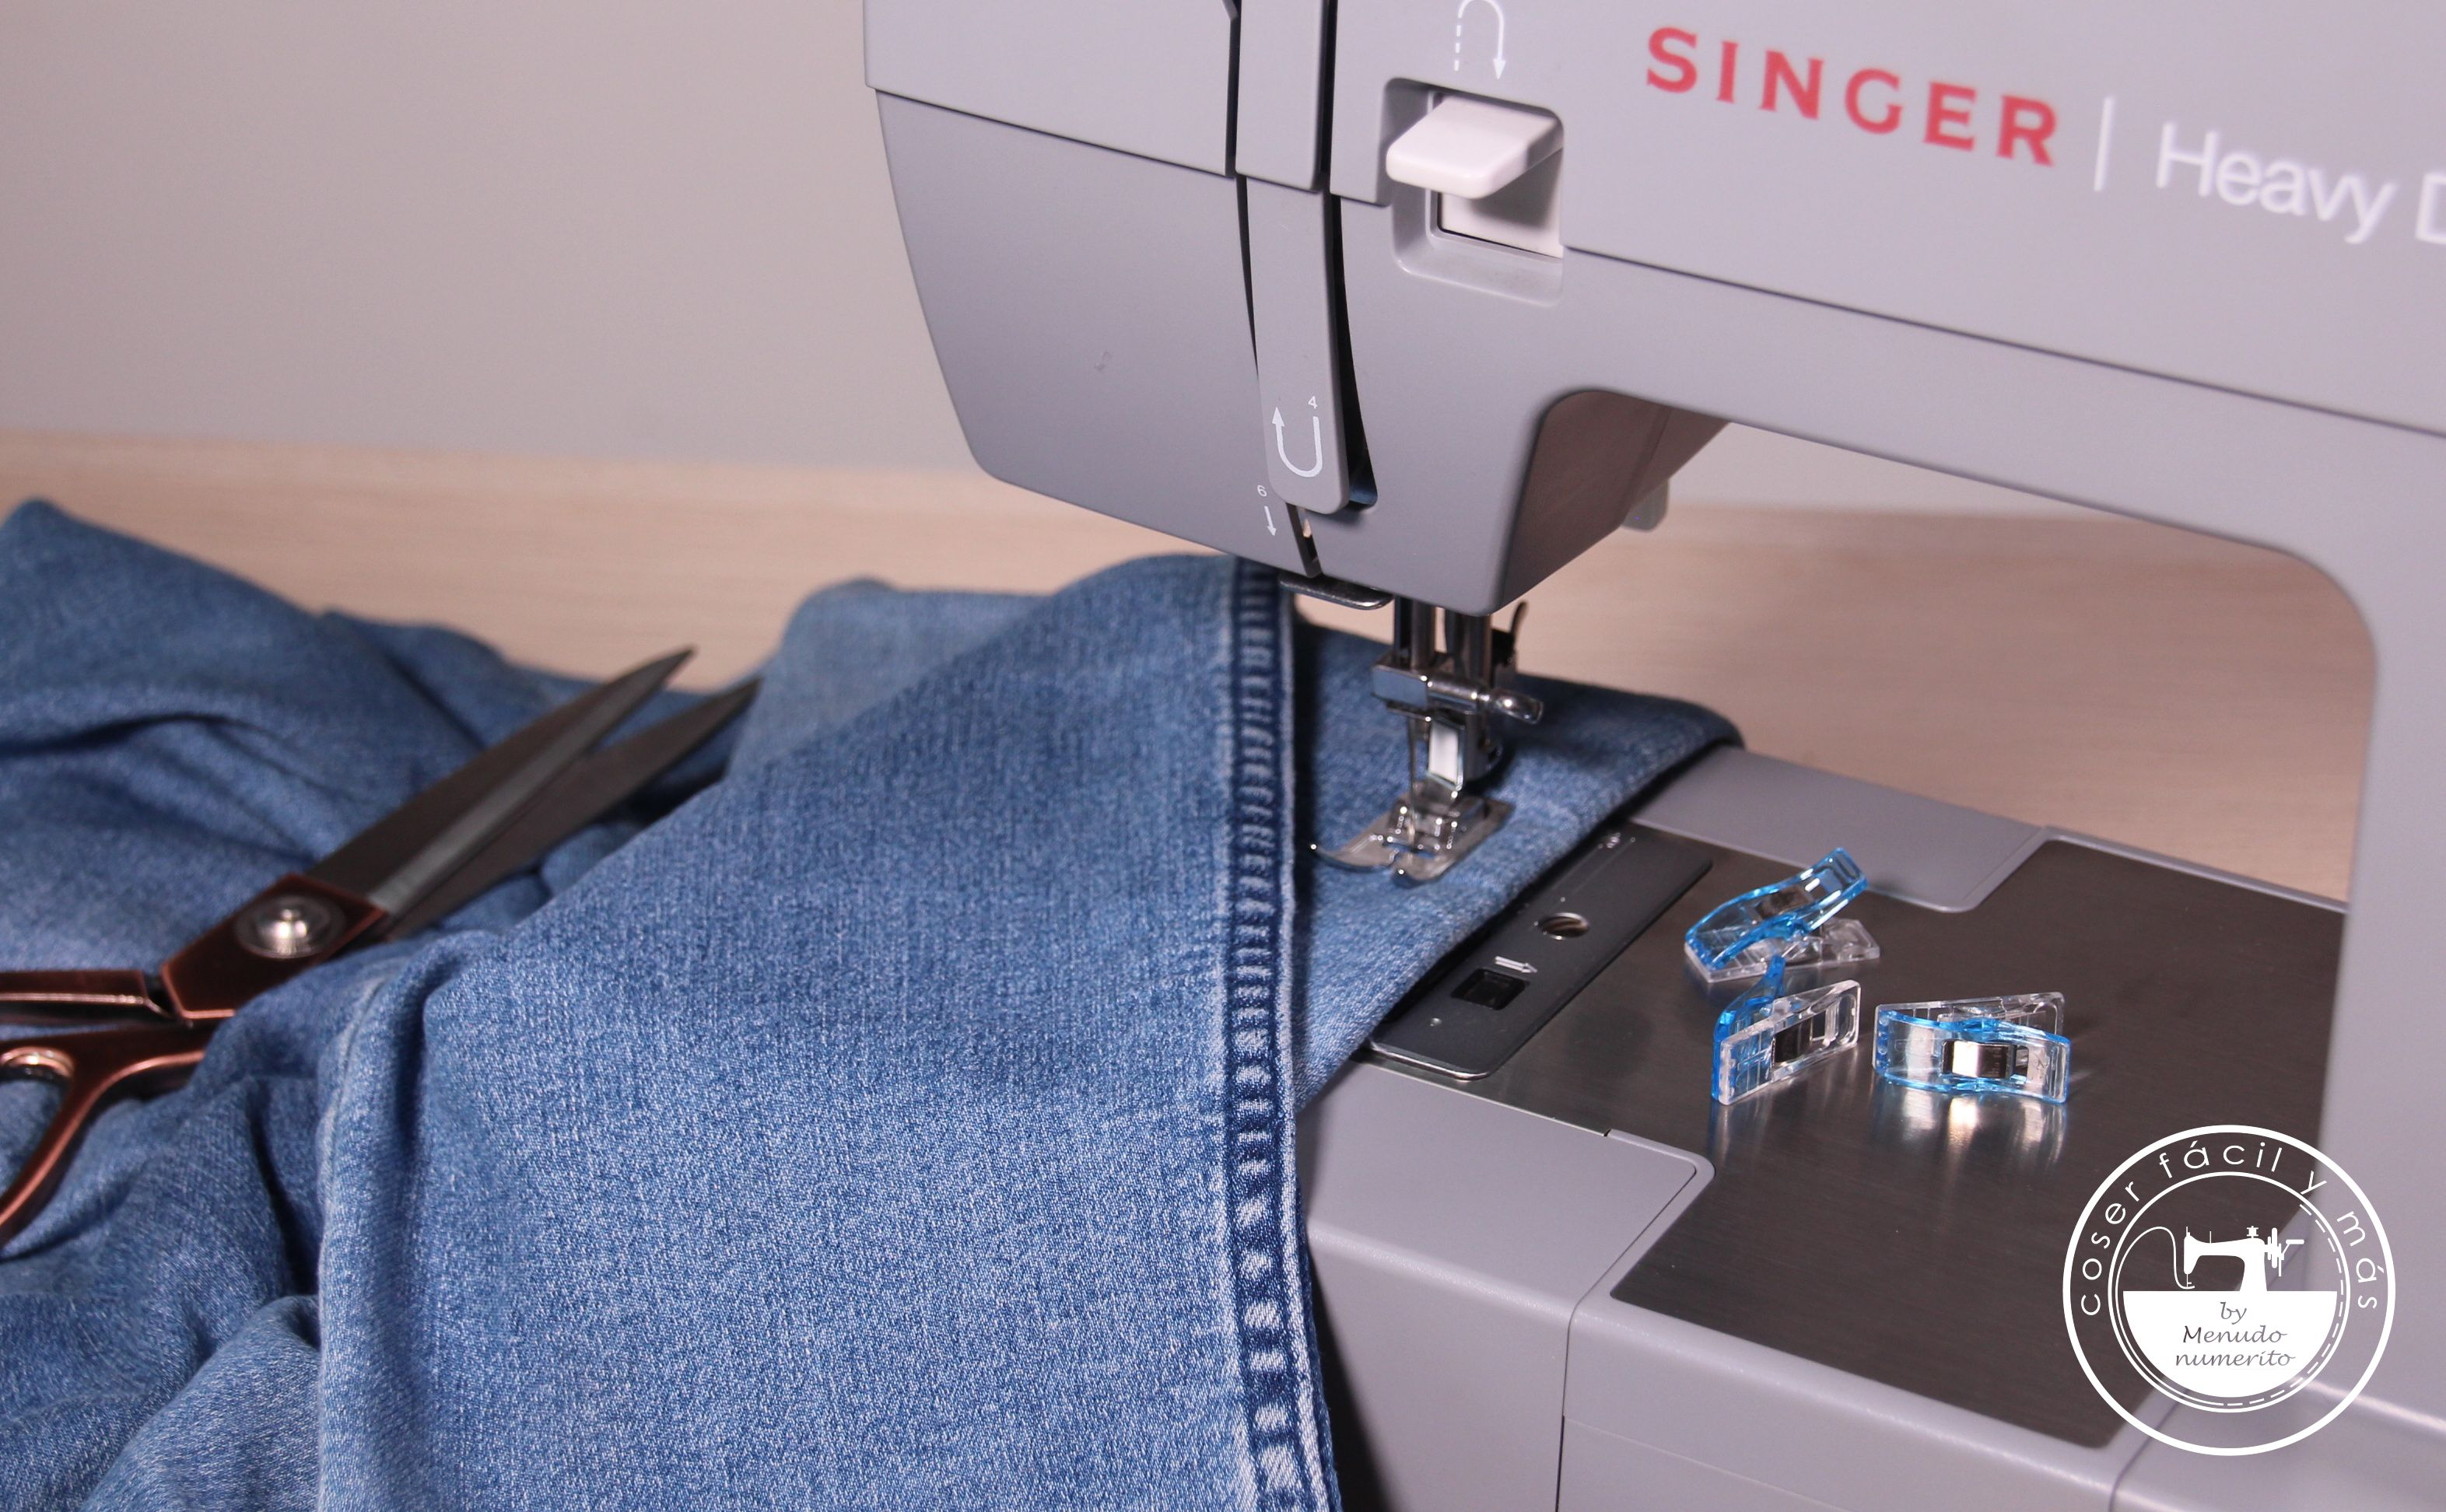 coser denim vaqueros blogs de costura facil